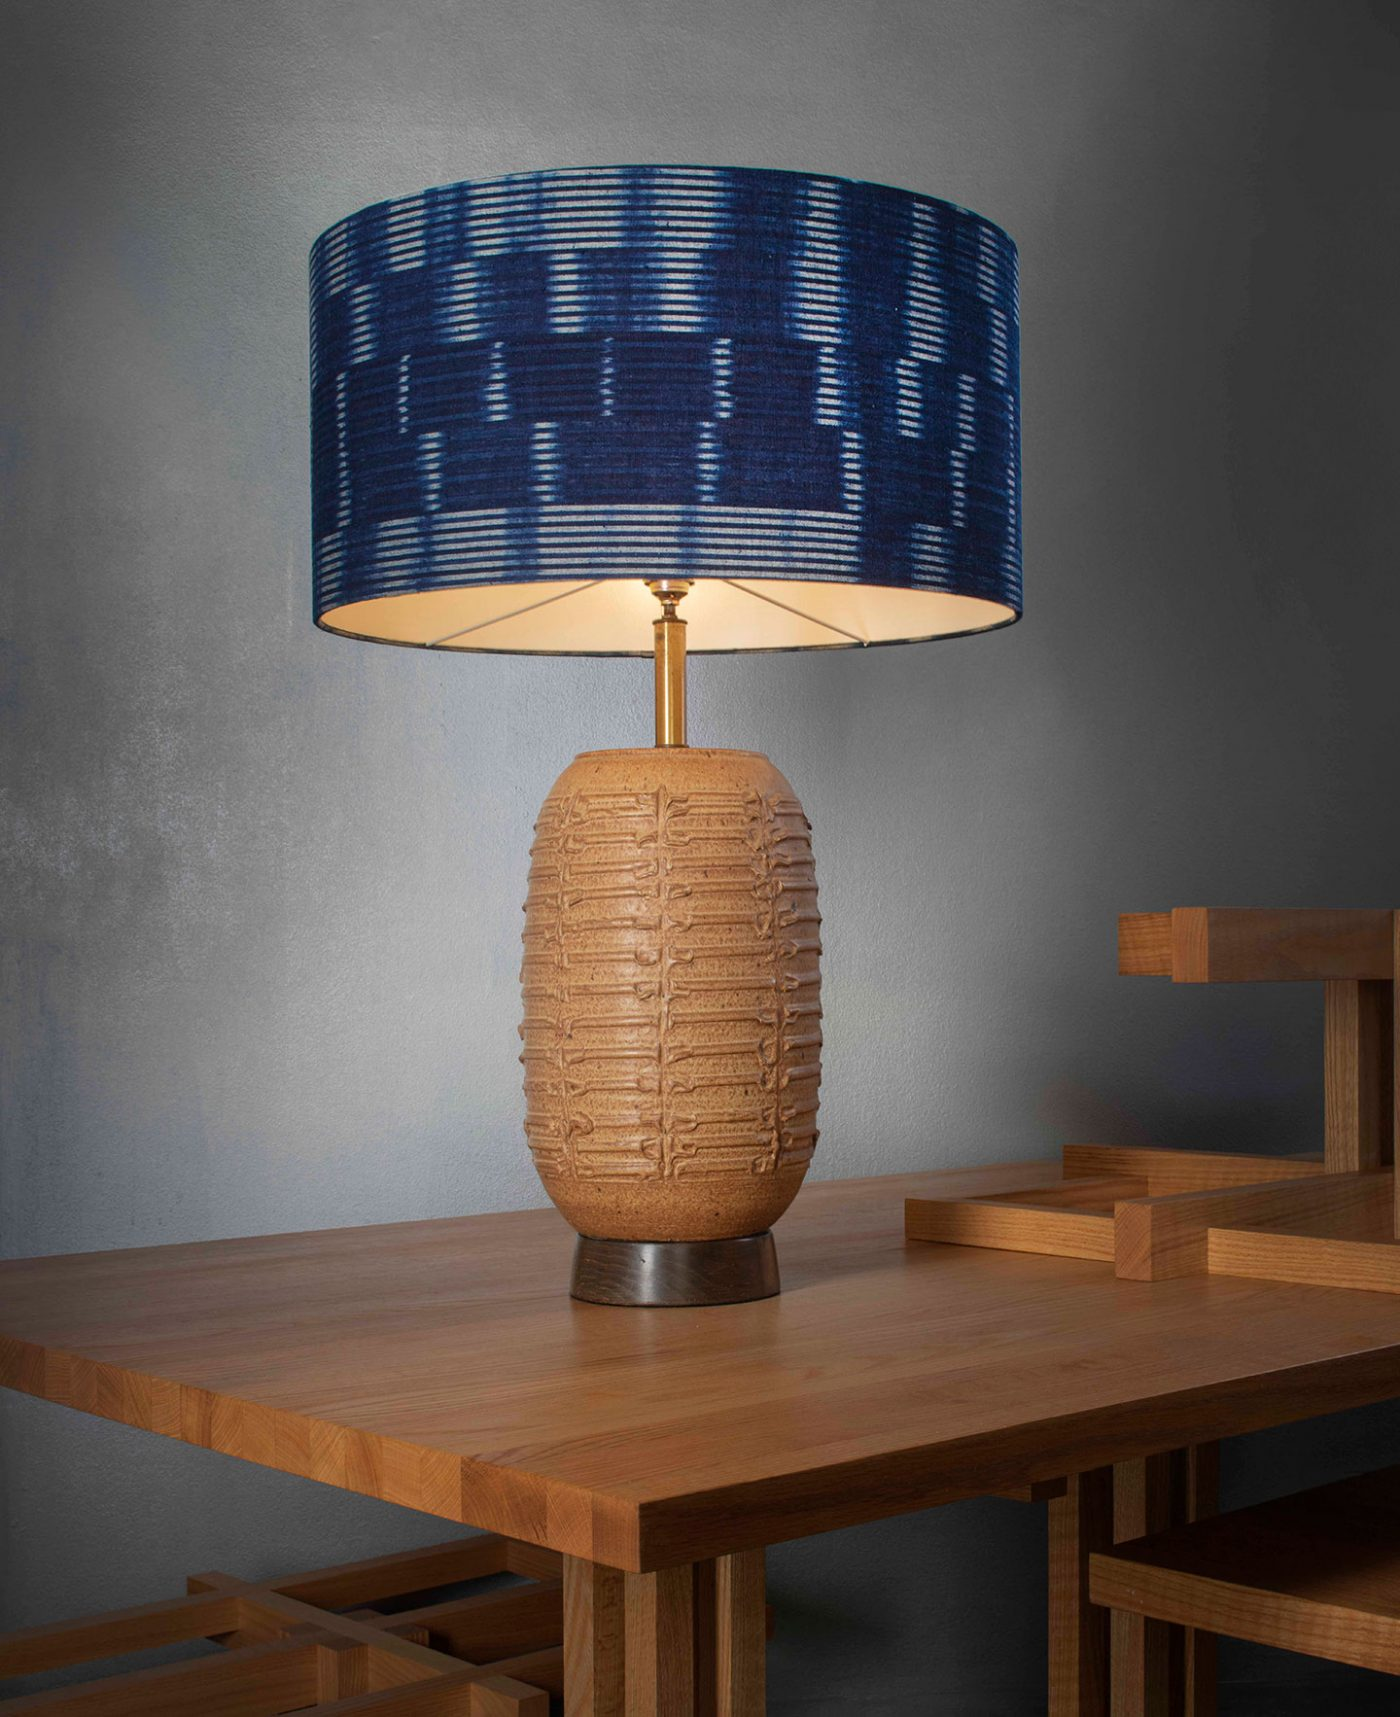 american-lamp,-japanese-fabric,-ceramictablelamp-harry-clark-interiro-design